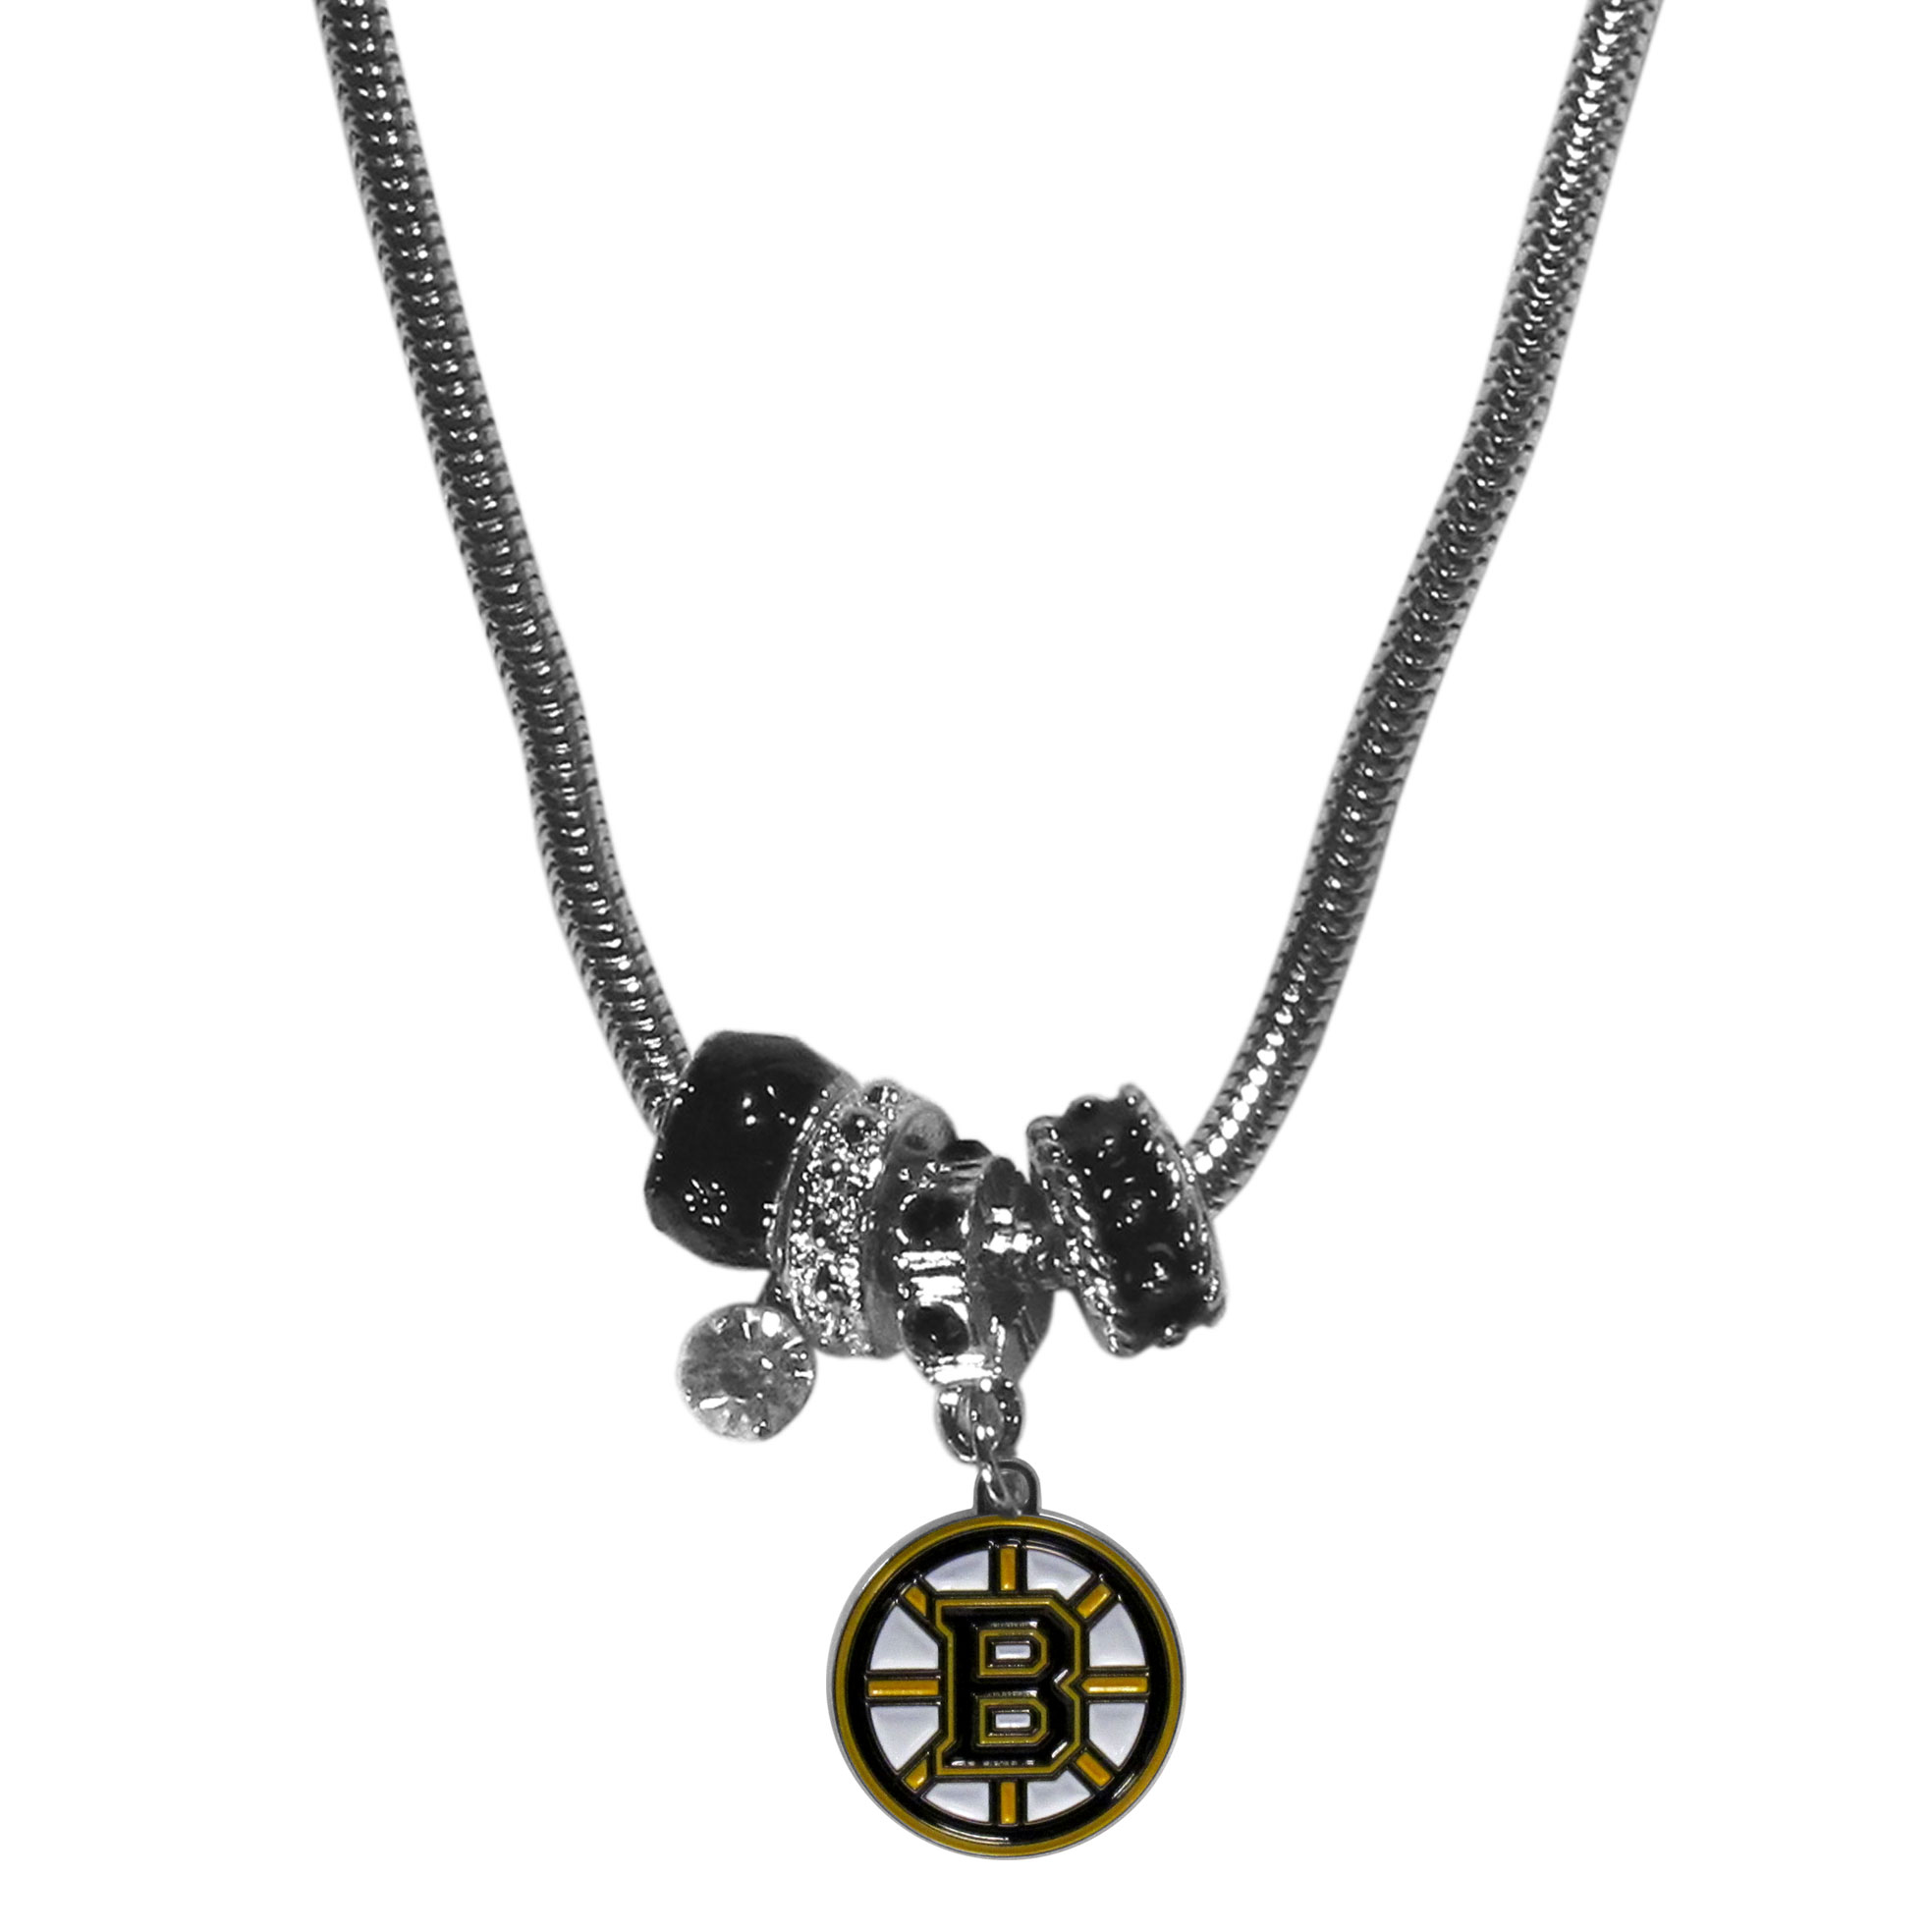 Boston Bruins Euro Bead Necklace - We have combined the wildly popular Euro style beads with your favorite team to create our Boston Bruins euro bead necklace. The 18 inch snake chain features 4 Euro beads with enameled Boston Bruins colors and rhinestone accents with a high polish, nickel free charm and rhinestone charm. Perfect way to show off your Boston Bruins pride.